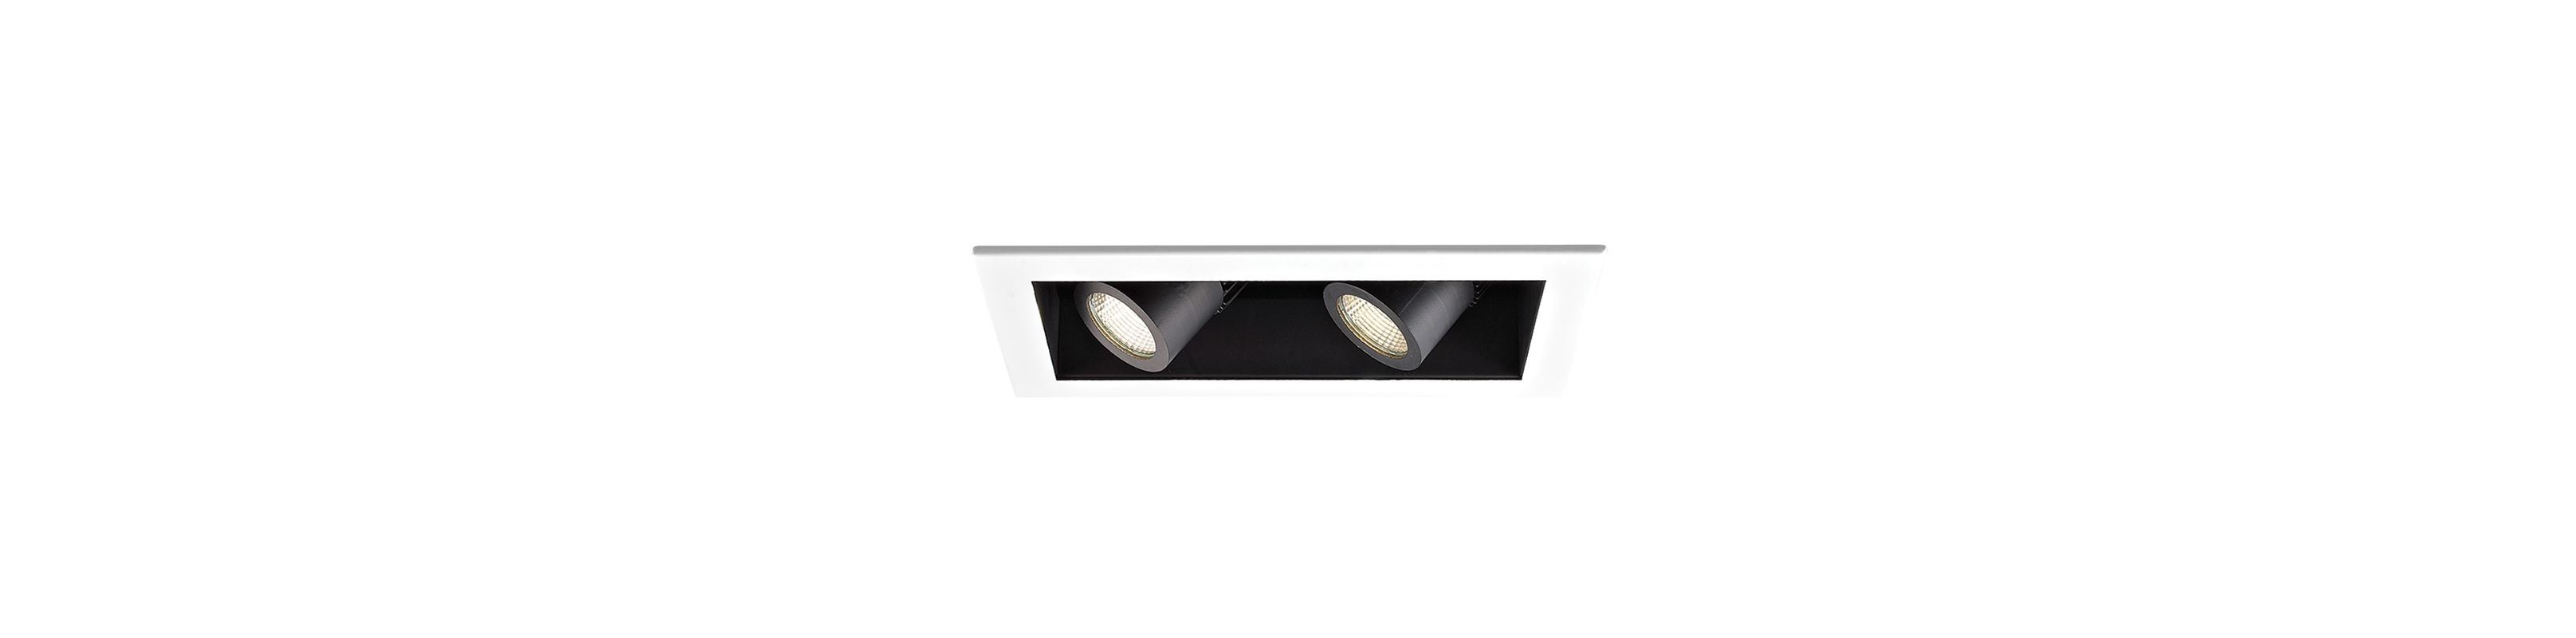 WAC Lighting MT-4LD216N-F930 2 Light Energy Star 3000K High Output LED